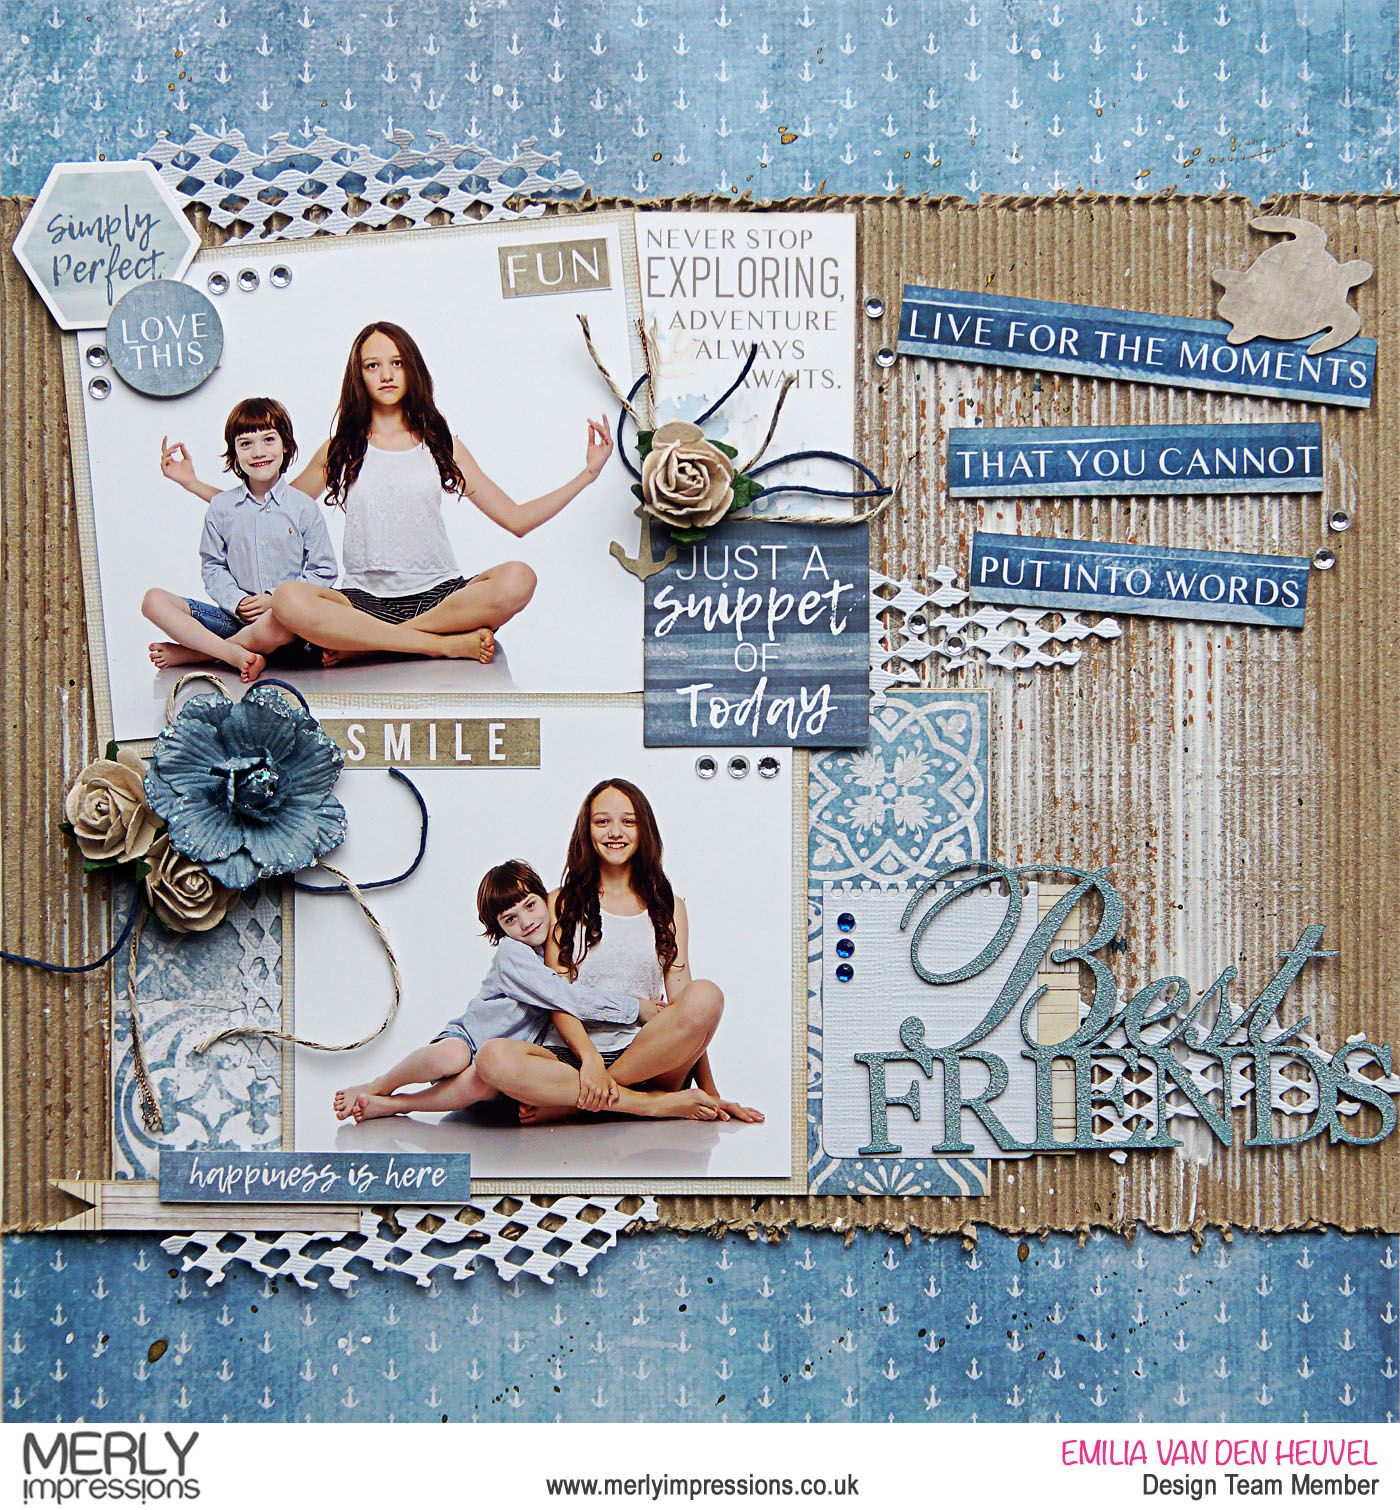 Best Friends Merly Impressions Kaisercraft Friend Scrapbook Scrapbook Page Layouts Photo Scrapbook